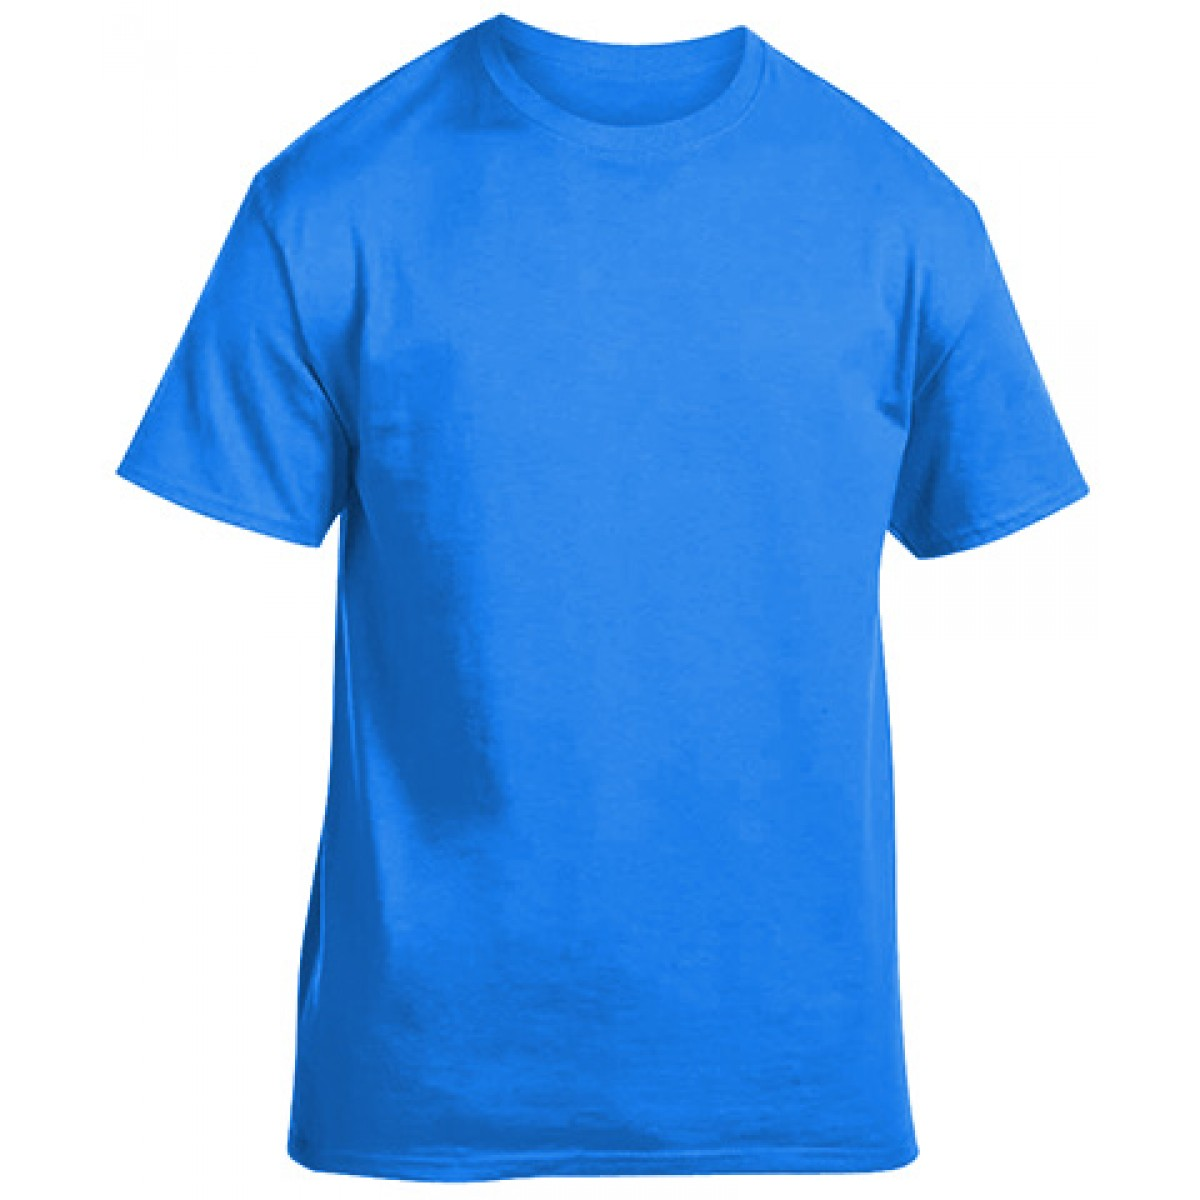 Soft 100% Cotton T-Shirt-Neon Blue-S